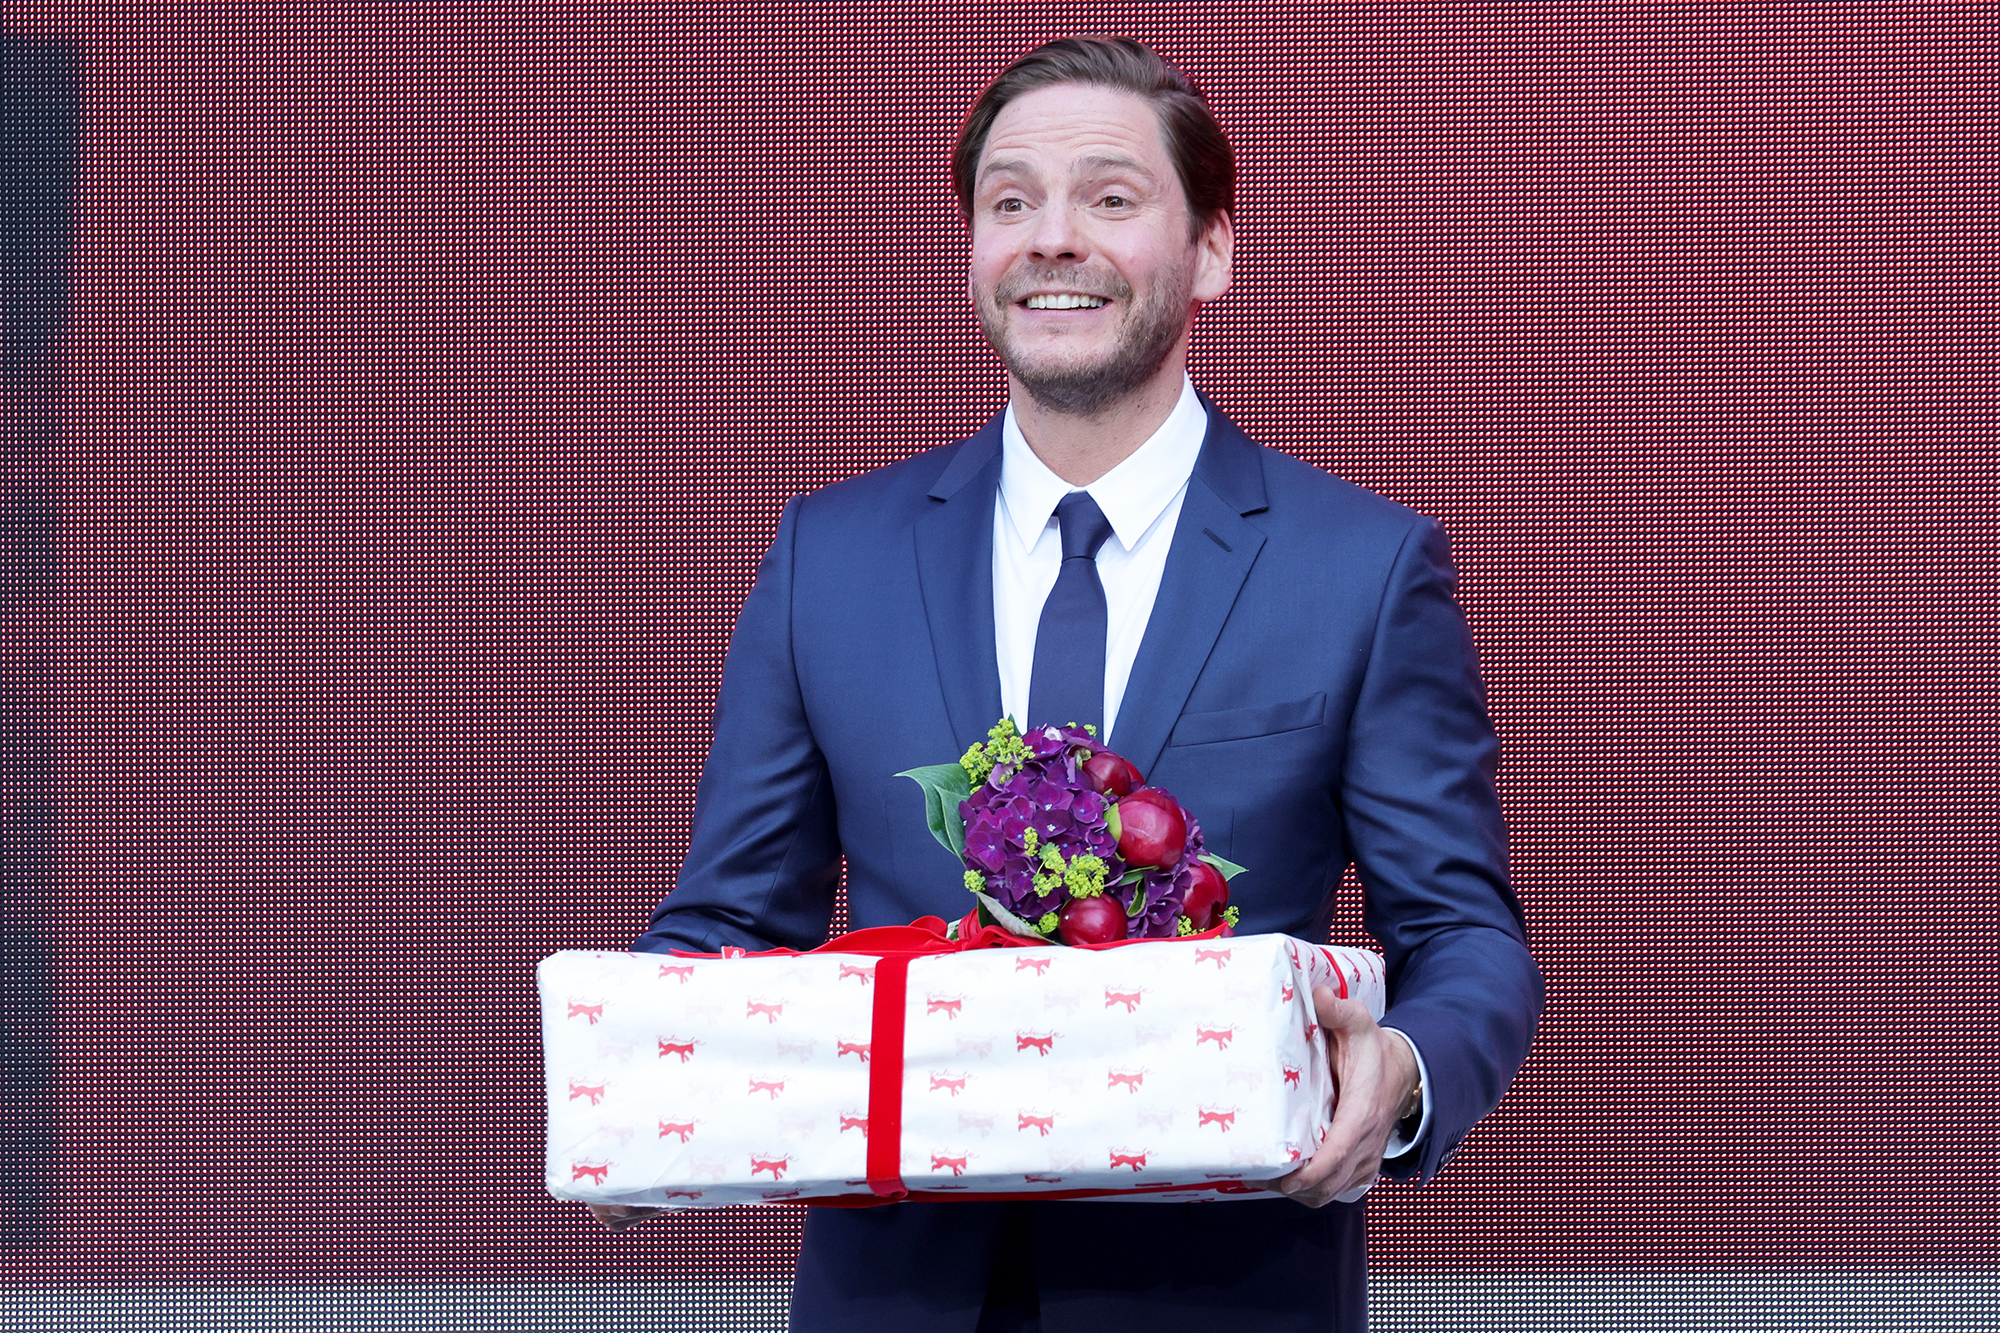 """Daniel Bruehl receives a birthday present at the """"Nebenan"""" (Next Door) premiere during the 71st Berlinale International Film Festival Summer Special at Freiluftkino Museumsinsel on June 16, 2021 in Berlin, Germany"""